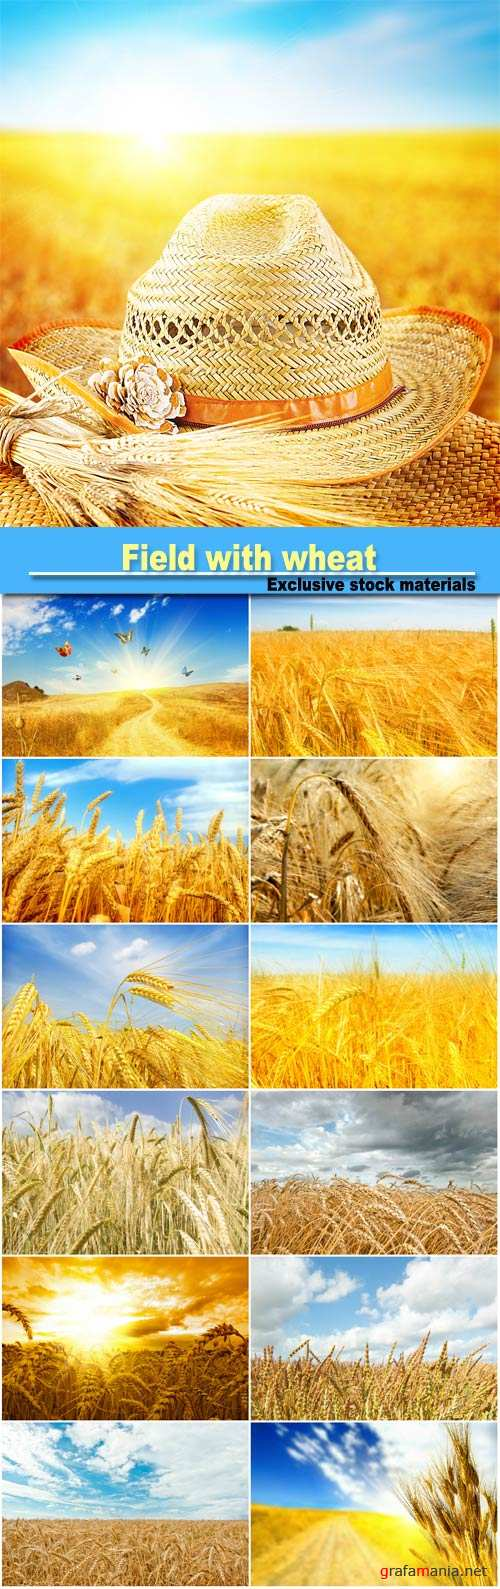 Field with wheat background with spikelets of wheat